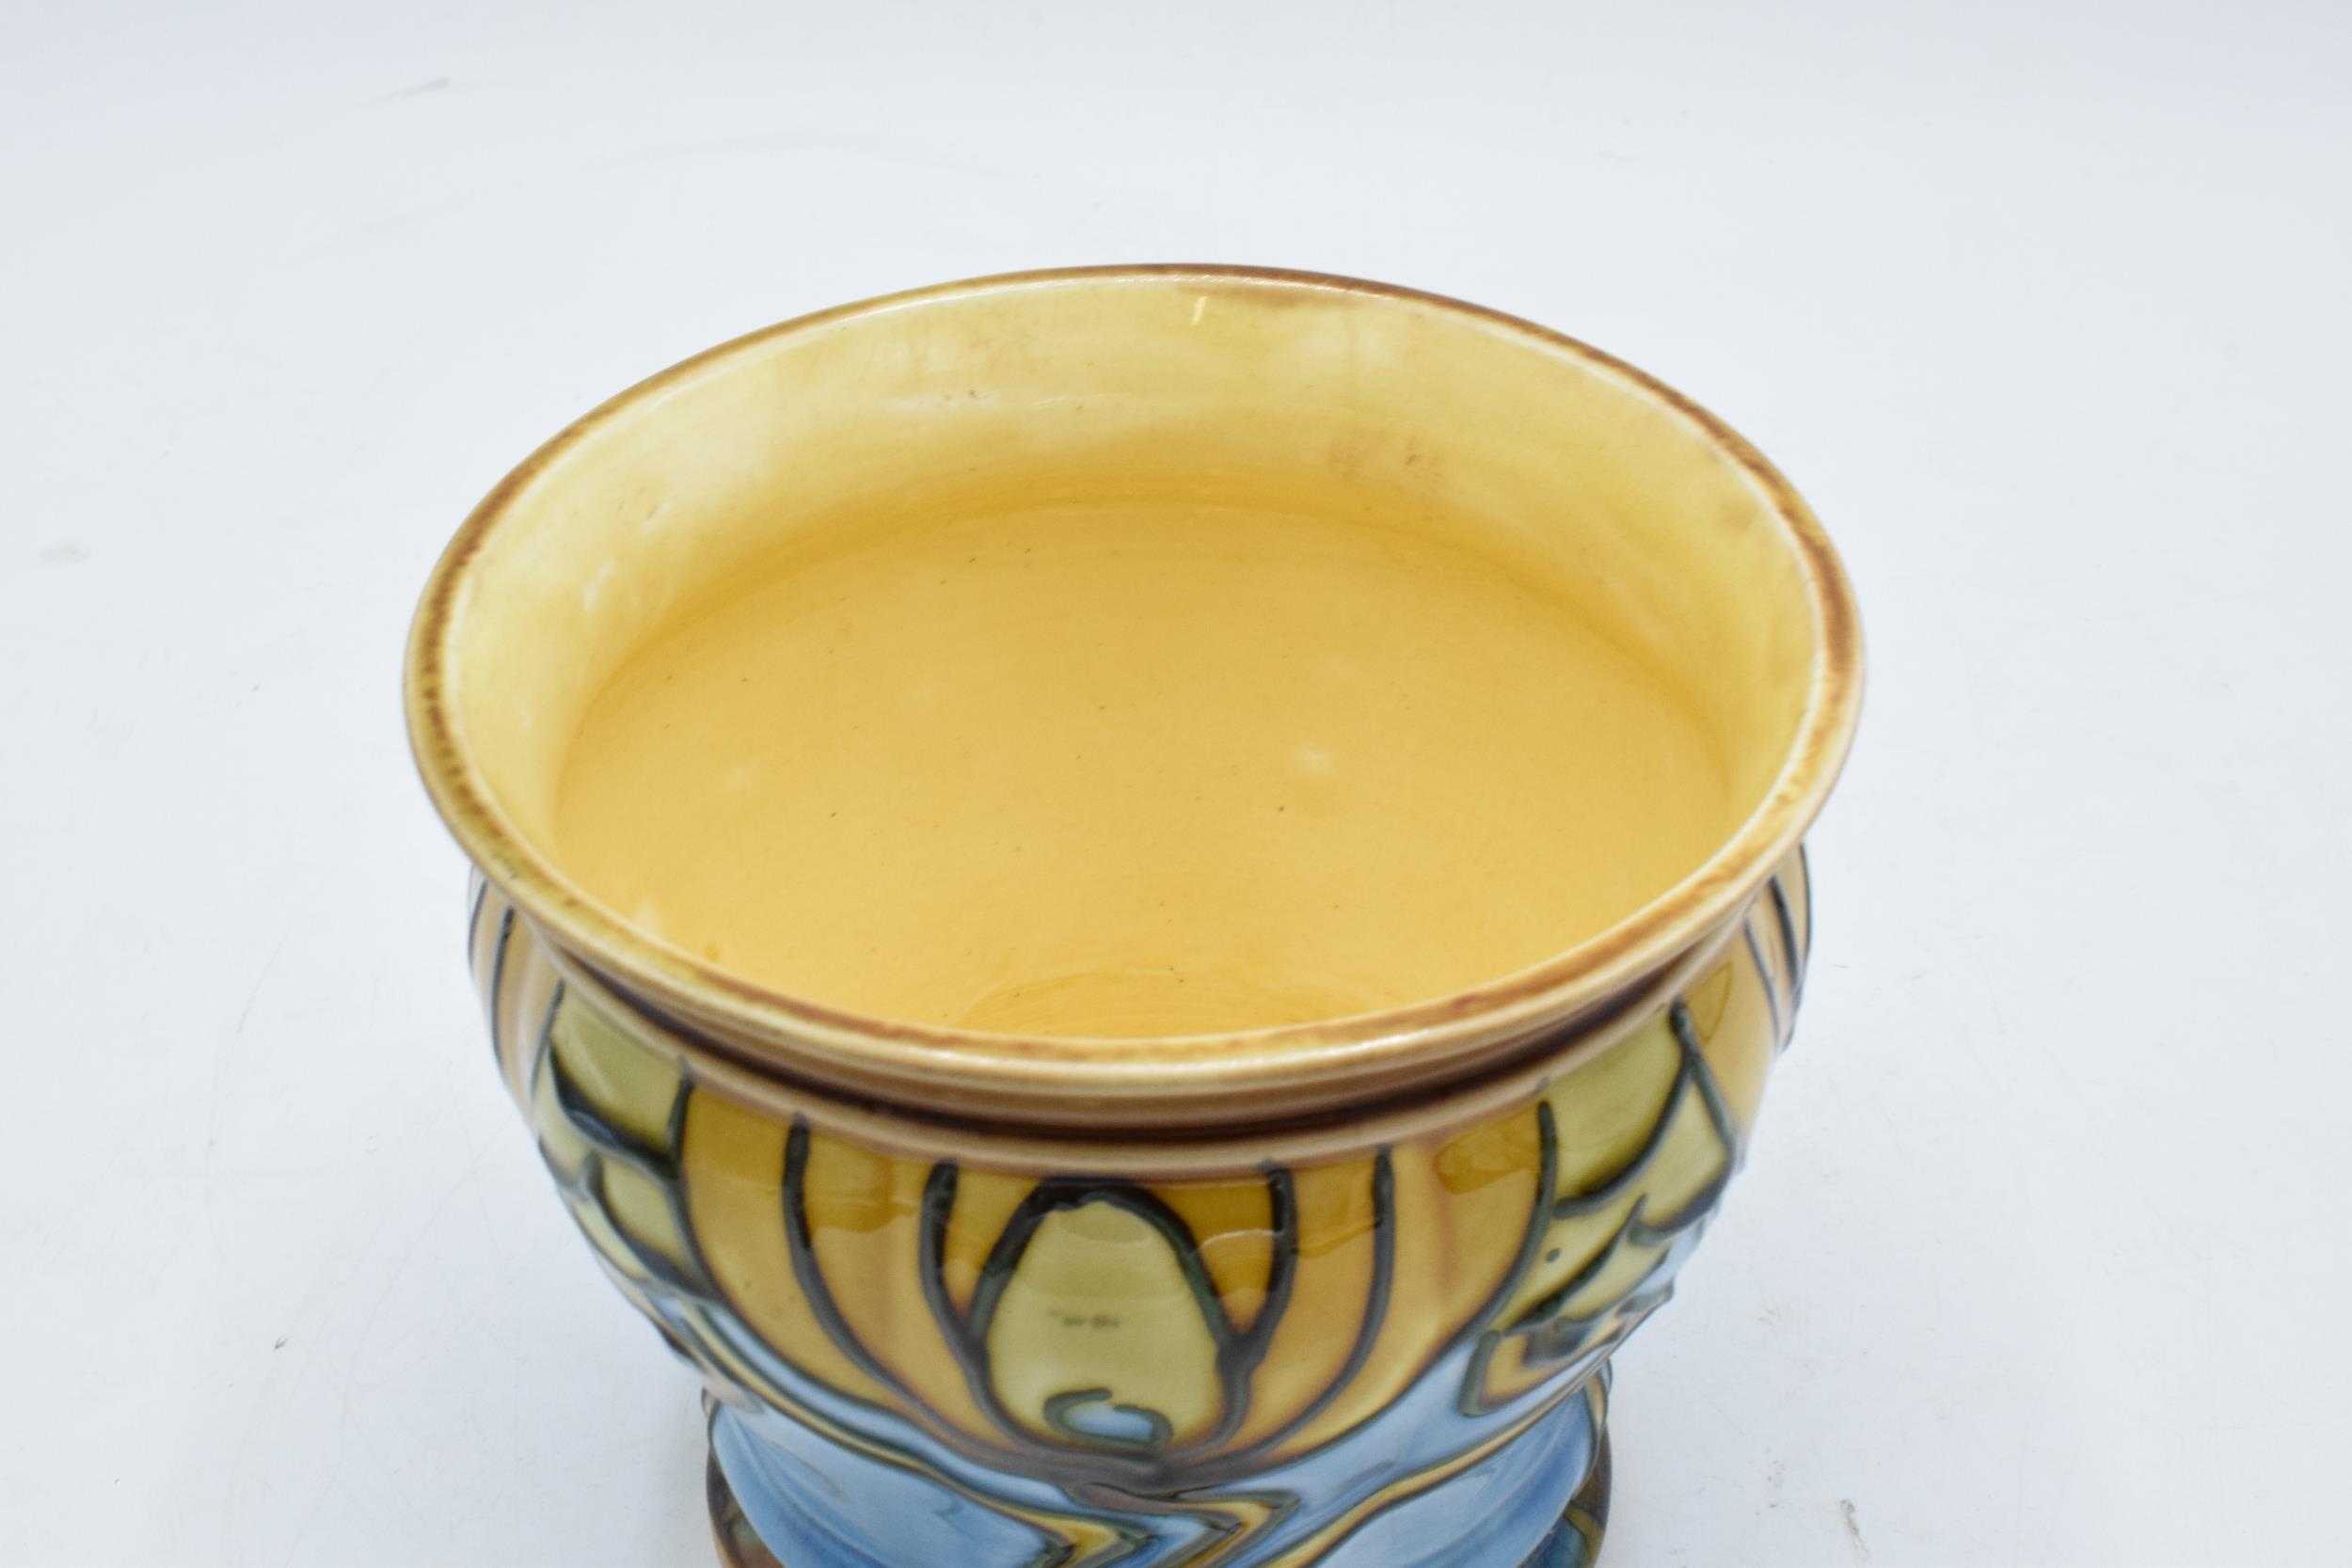 Minton Secessionist Jardinière with a stylised design 'No. 9'. 11cm tall. 12.5 diameter. Condition - Image 4 of 6